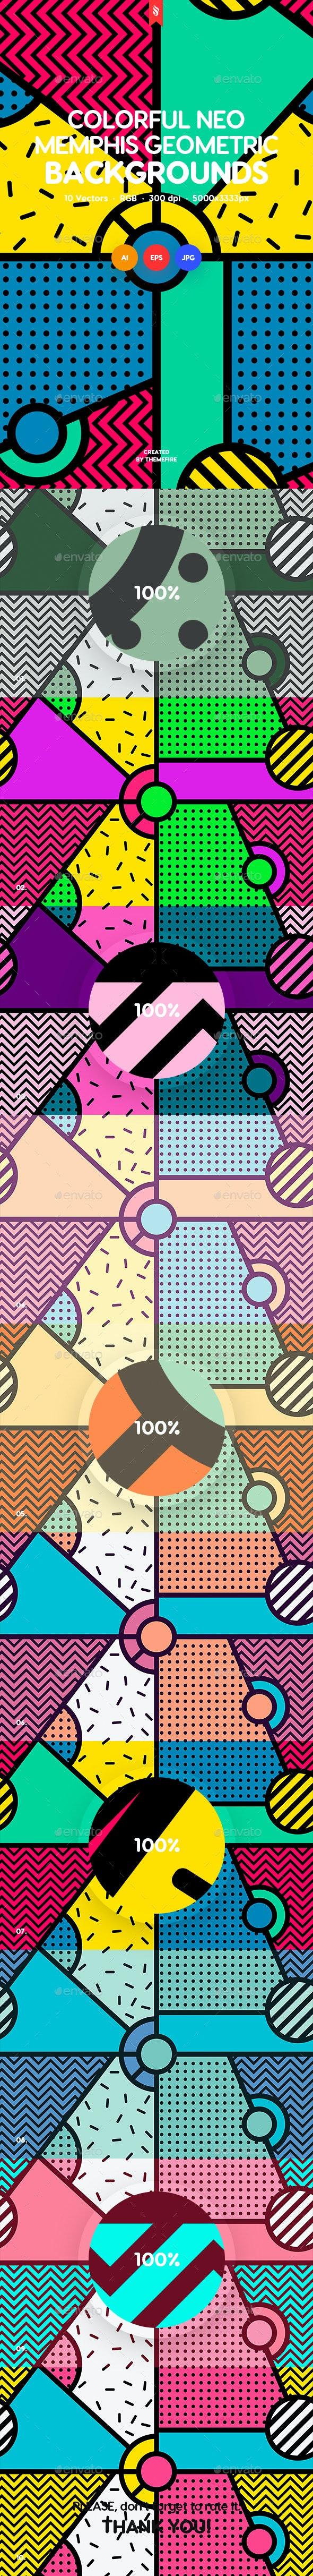 Colored Neo Memphis Geometric Seamless Patterns - Patterns Backgrounds